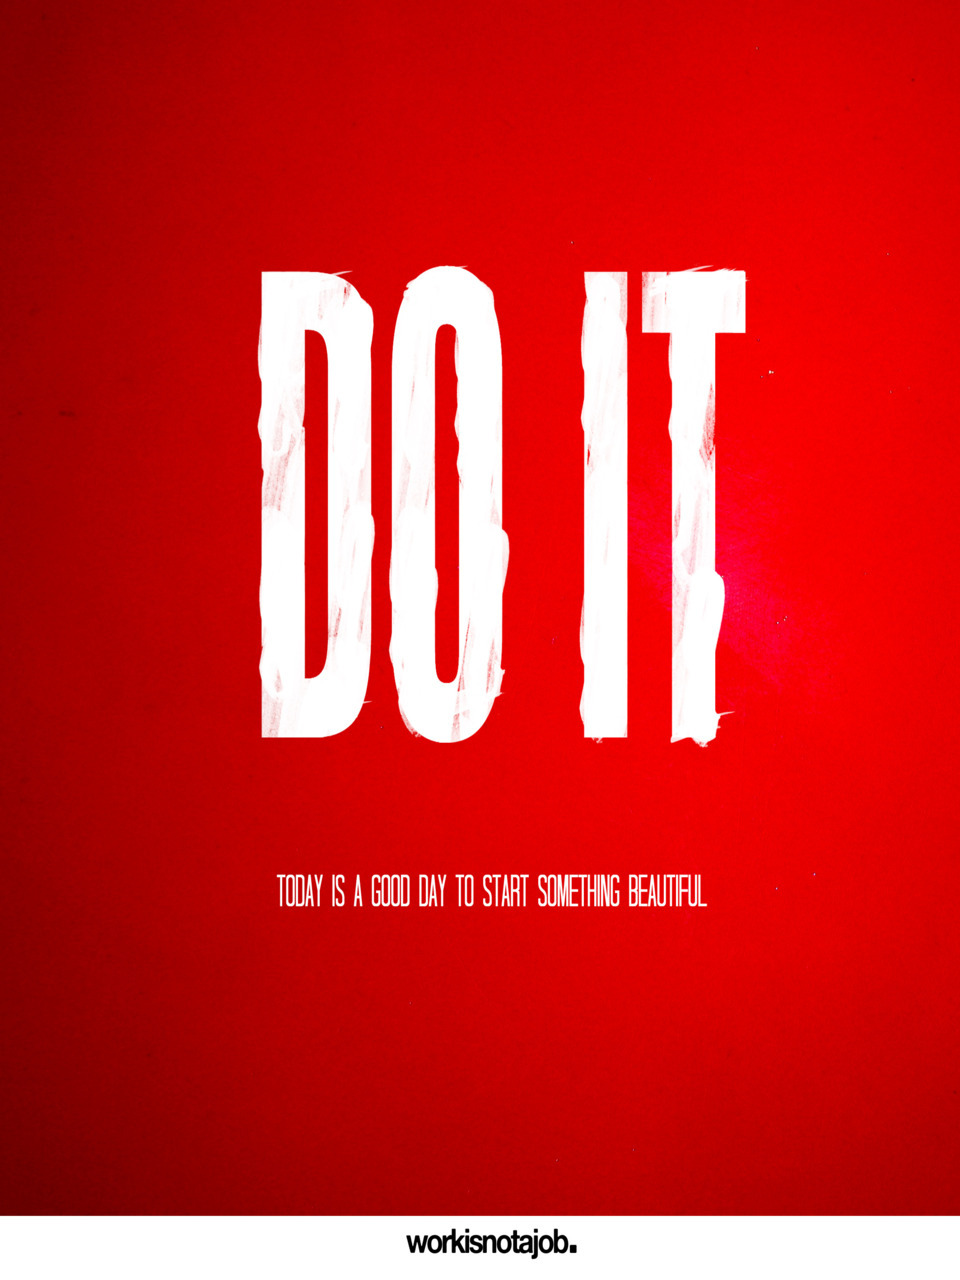 Do it do it do it do it do it now. Today is a good day to start something beautiful. http://workisnotajob.com